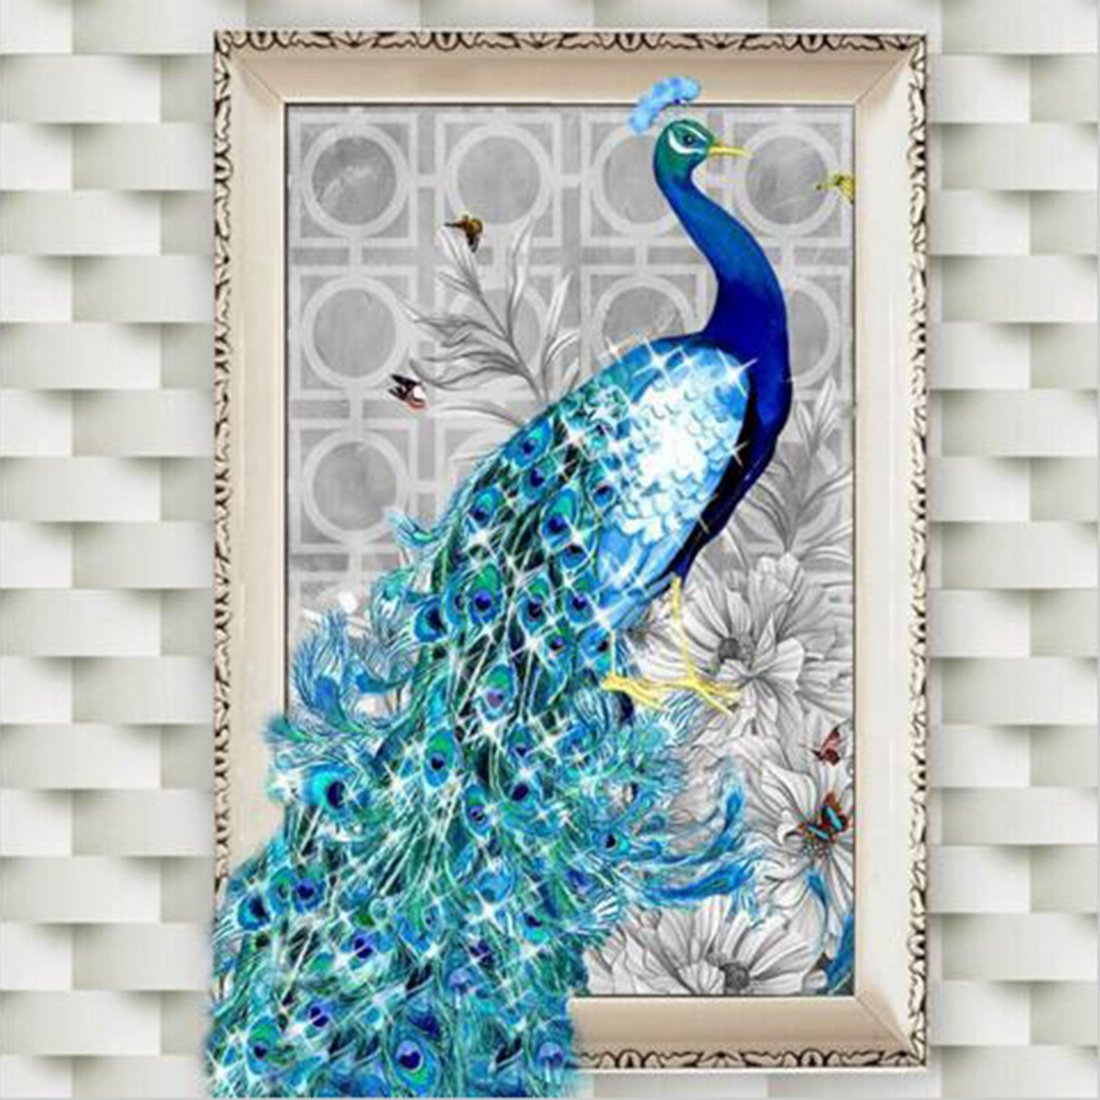 Peacock Embroidery Patterns Free Embroidery Patterns With Peacocks Free Embroidery Patterns